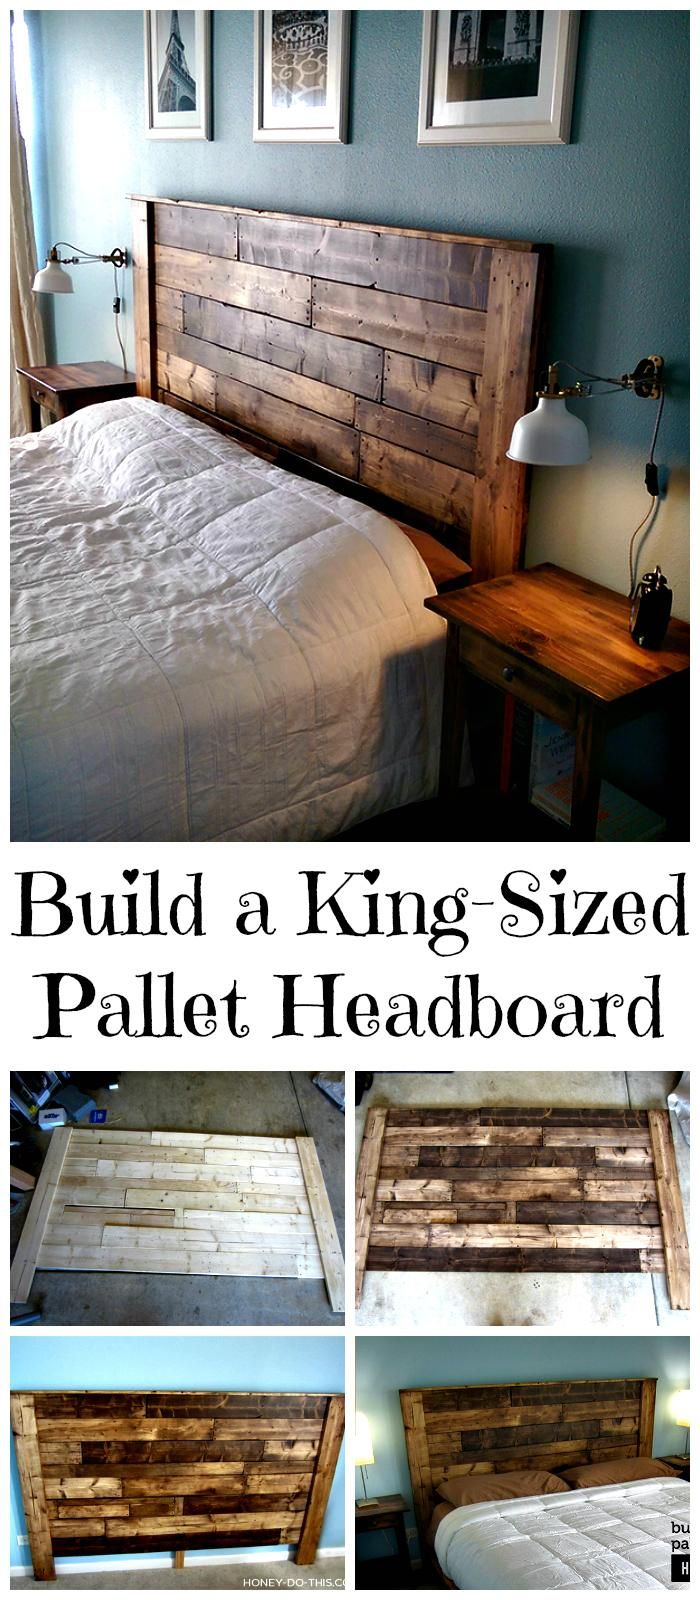 DIY King Sized Pallet Headboard Tutorial   150 Best DIY Pallet Projects And  Pallet Furniture Crafts   Page 36 Of 75   DIY U0026 Crafts